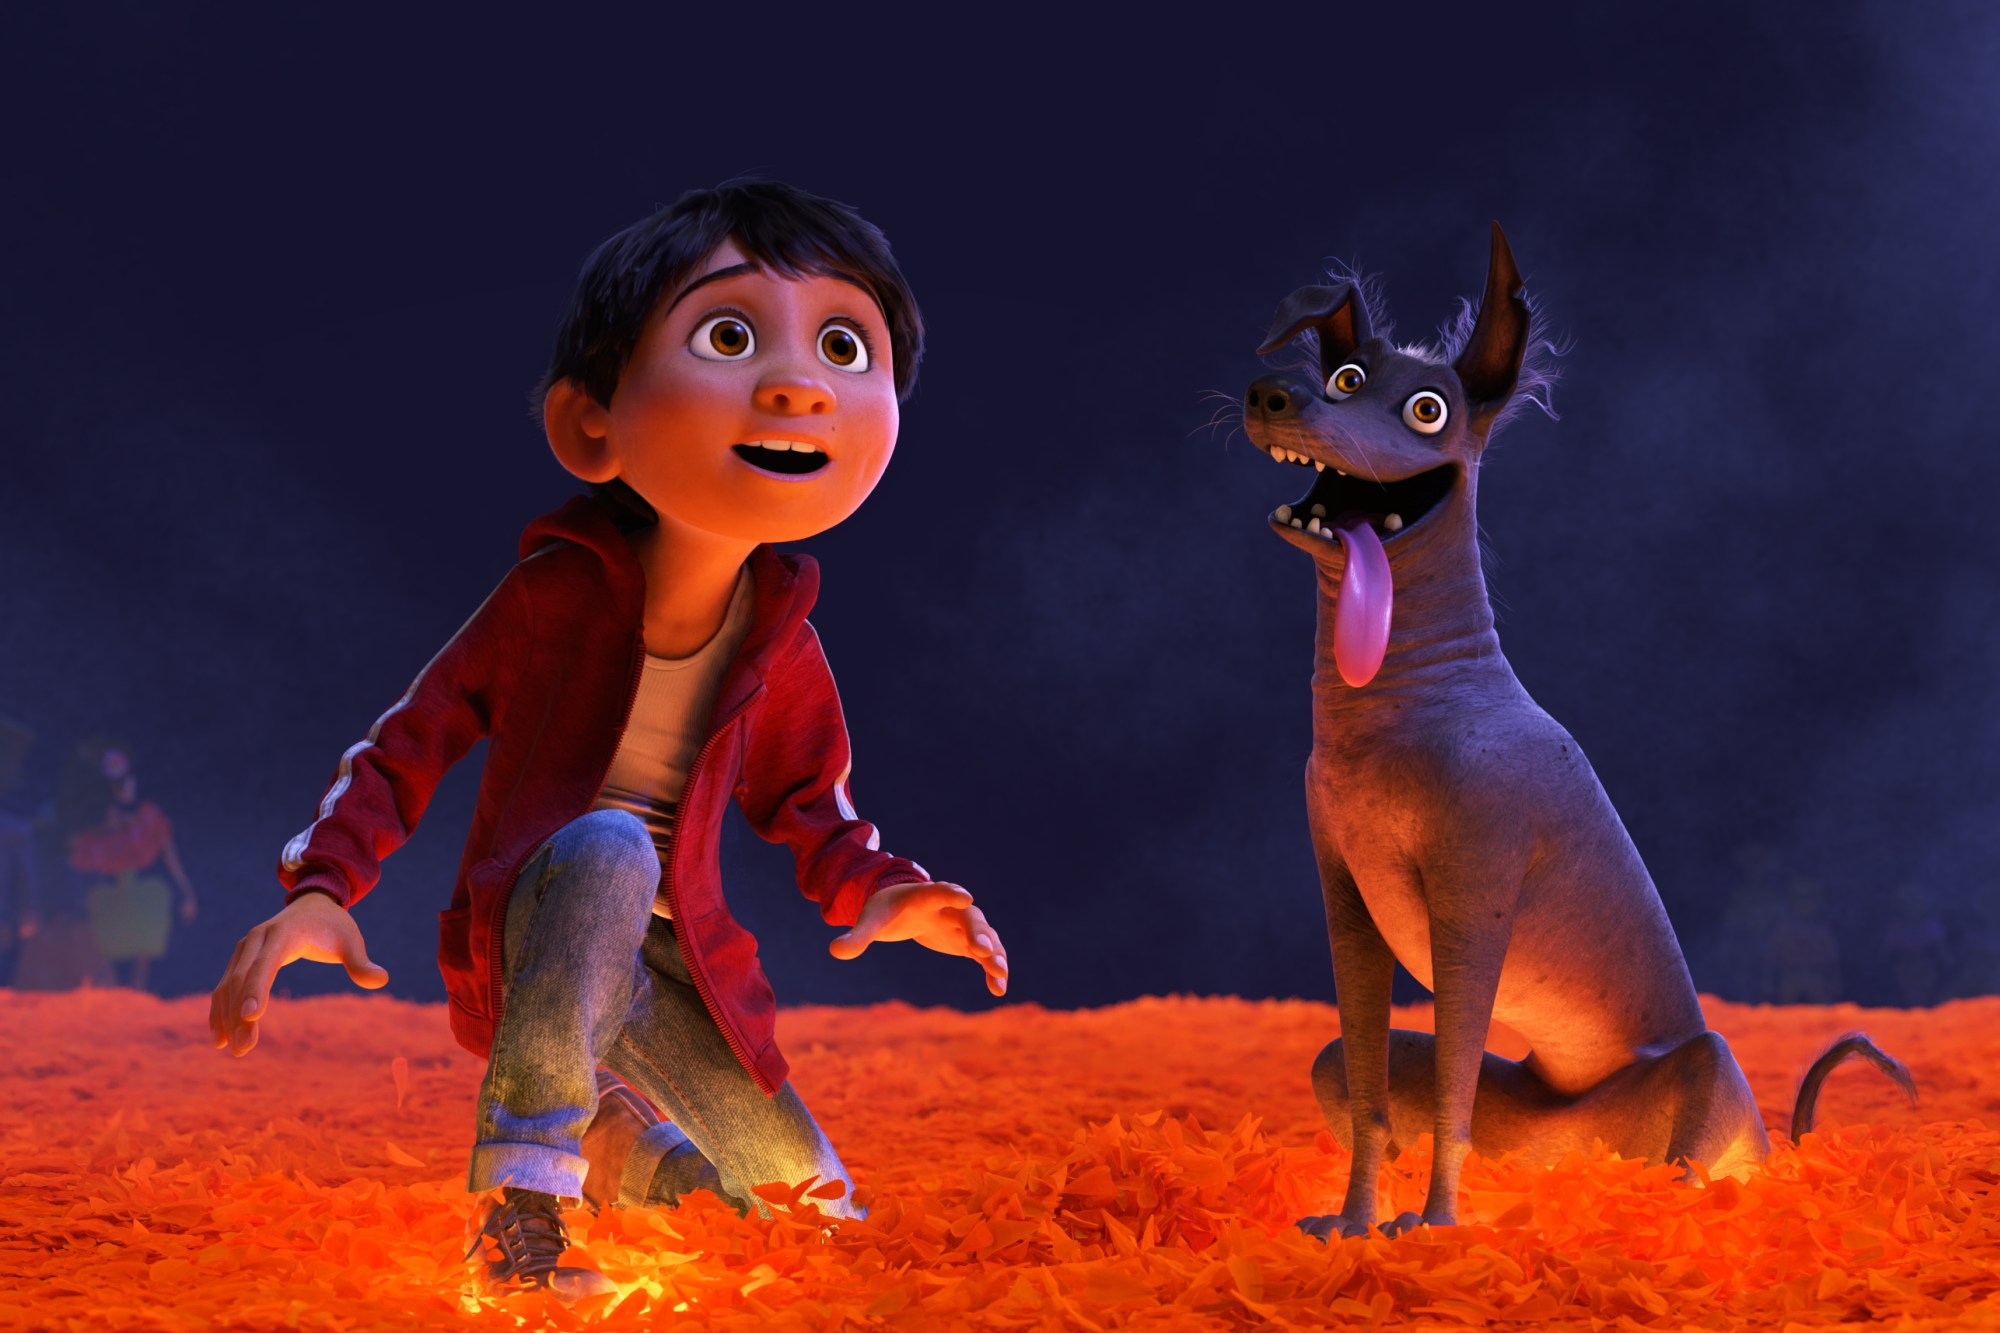 Miguel and Natalia Lafourcade Are Collaborating on a Song for Pixar's 'Coco'